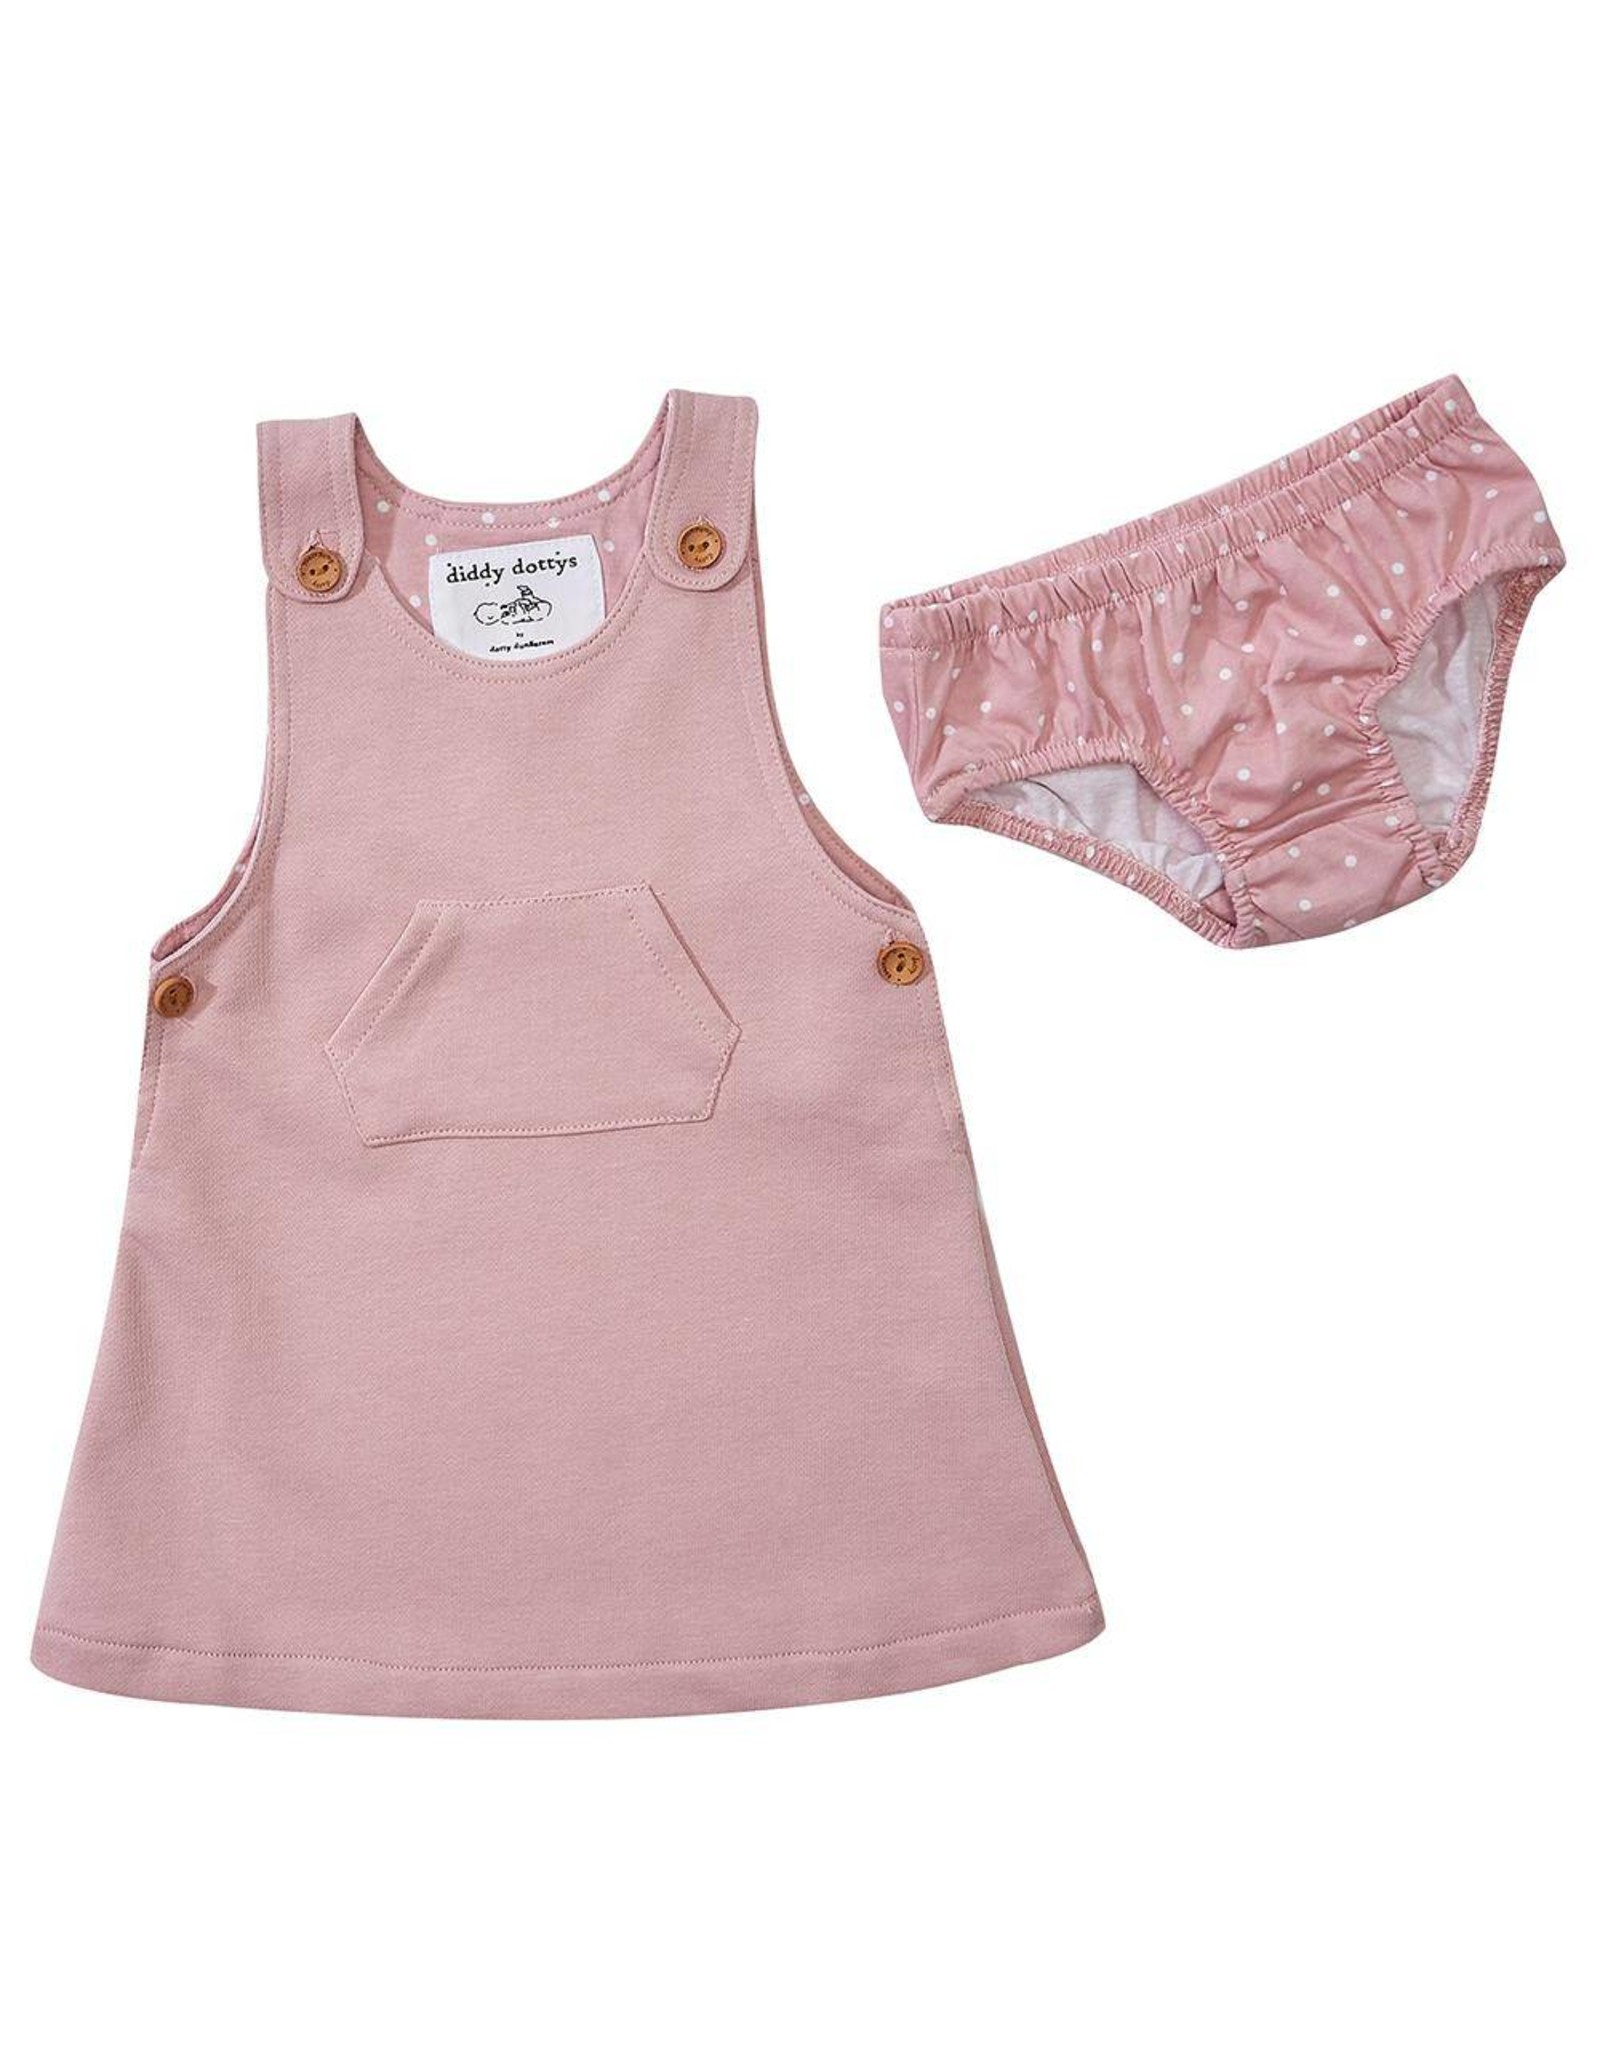 Dotty Dungarees Pink Diddy Dress